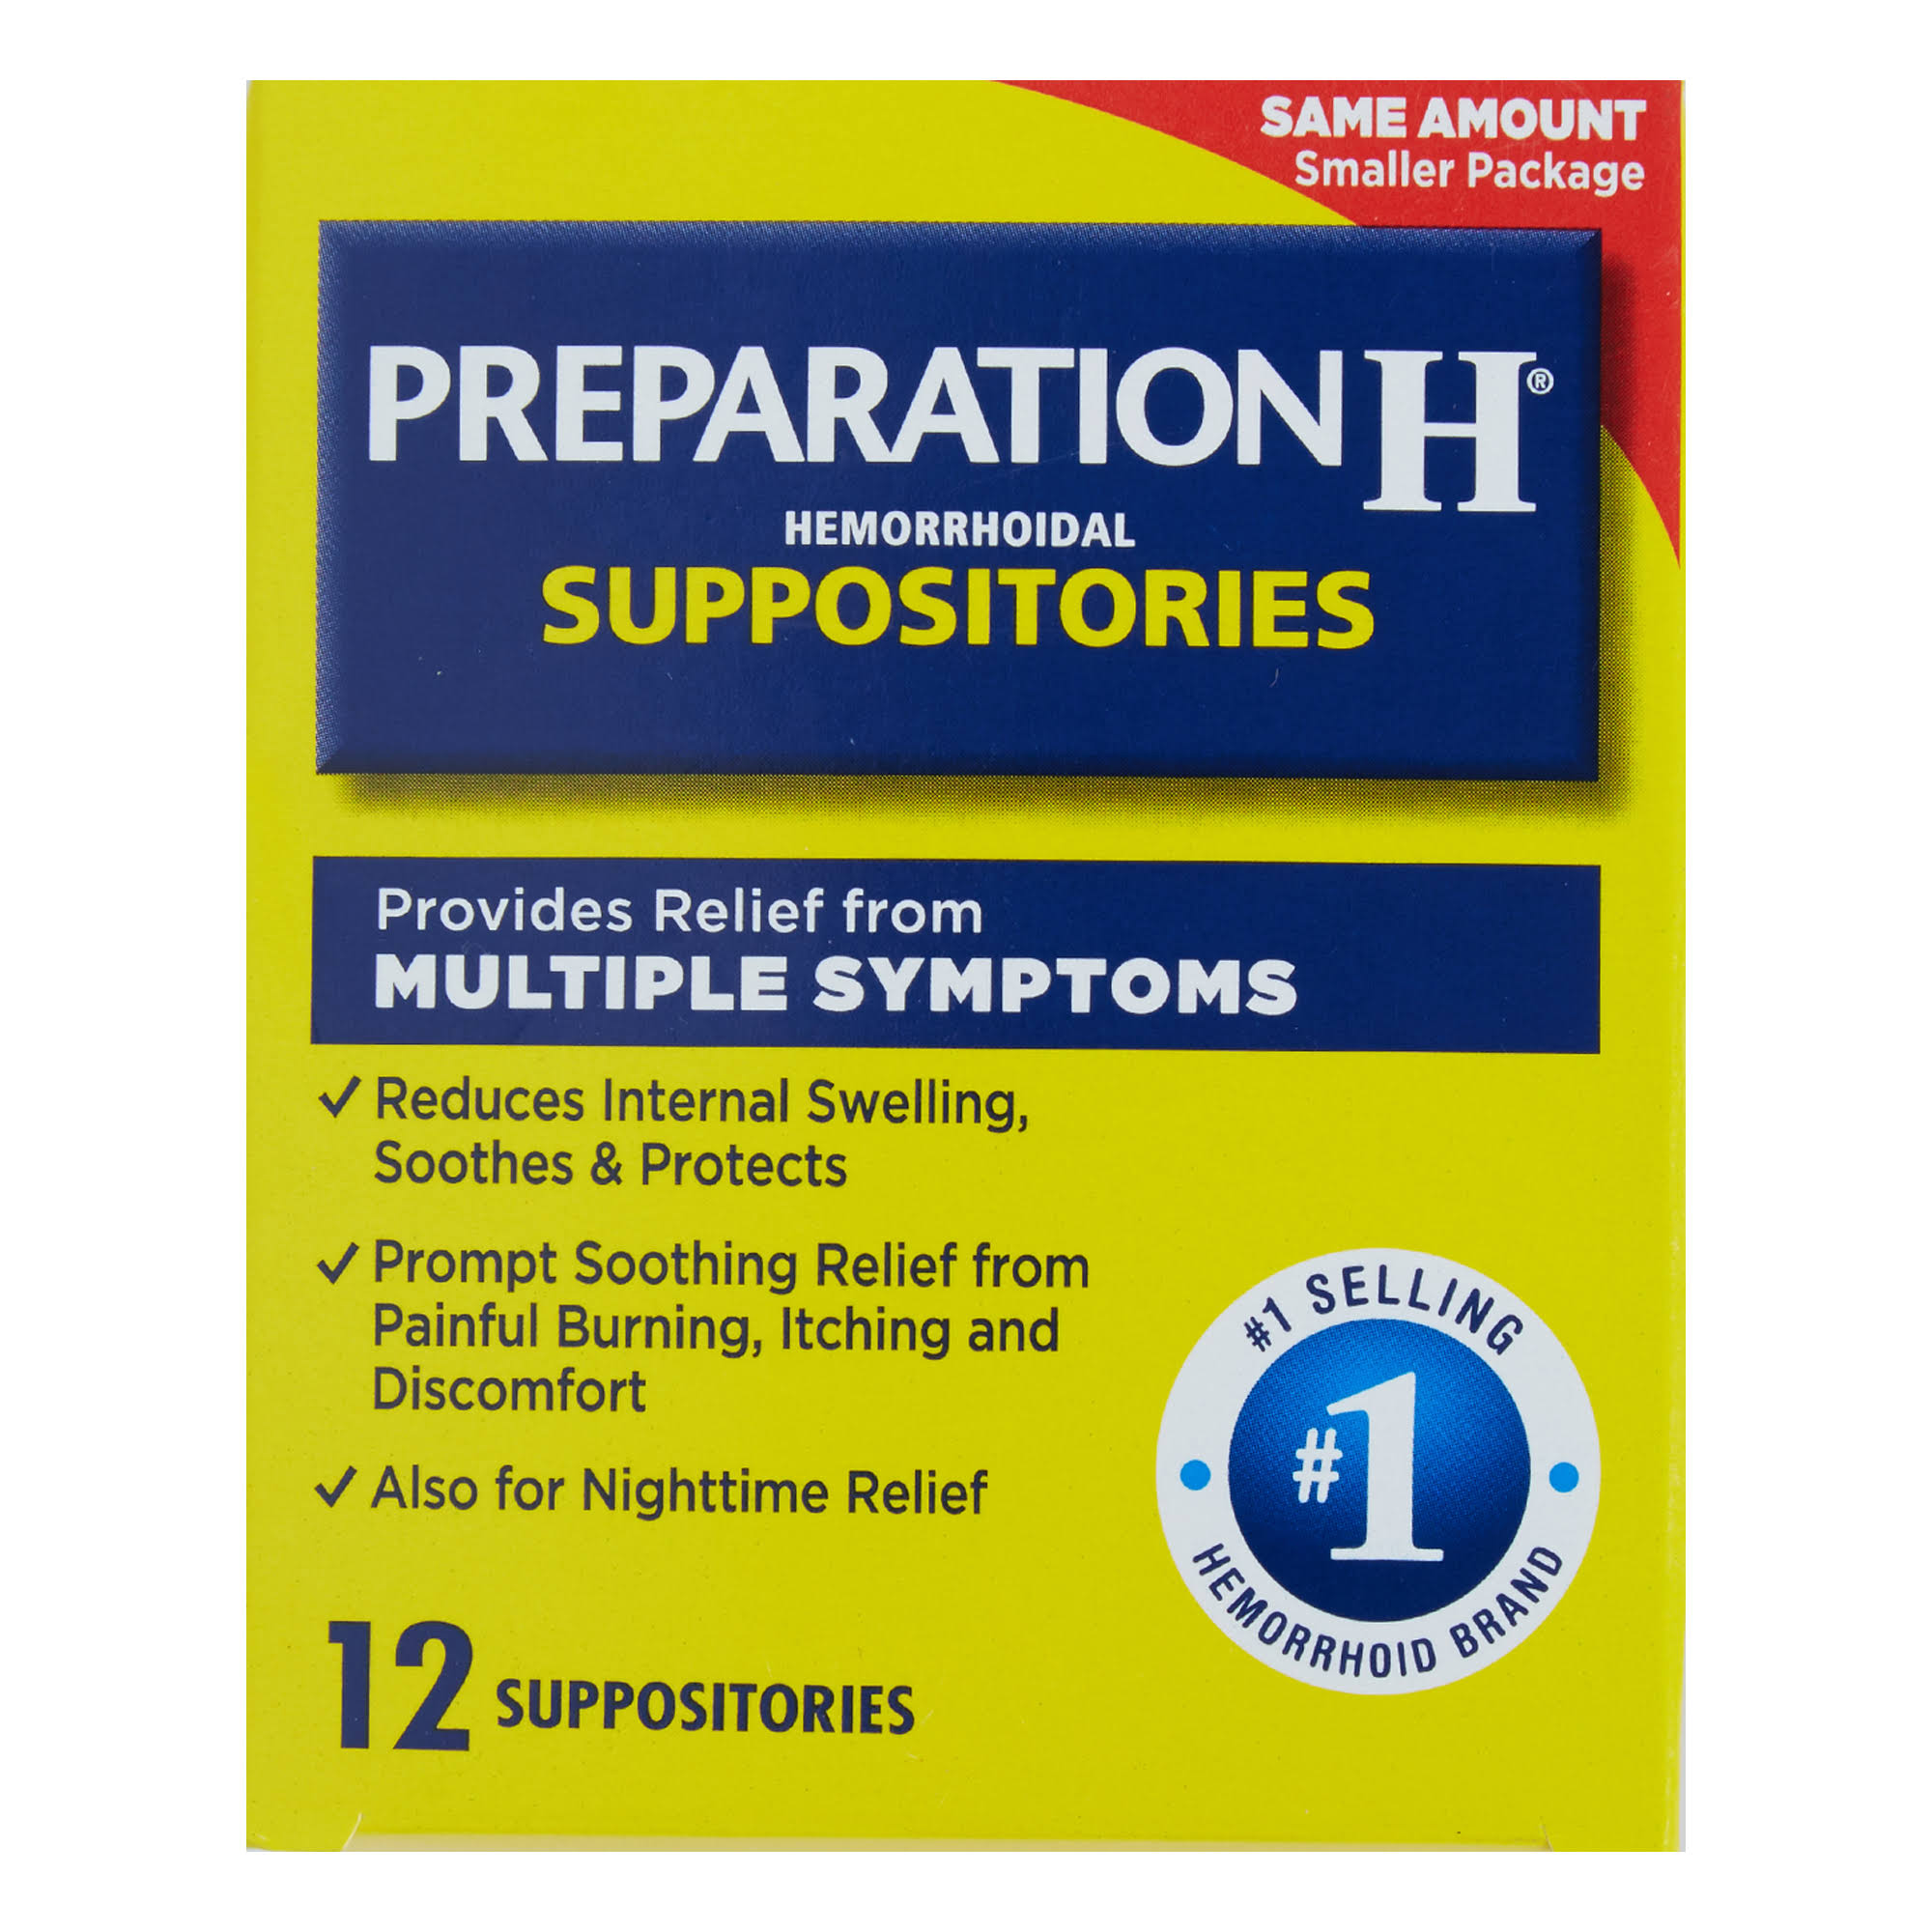 Preparation H Hemorrhoidal Suppositories - 12 Count